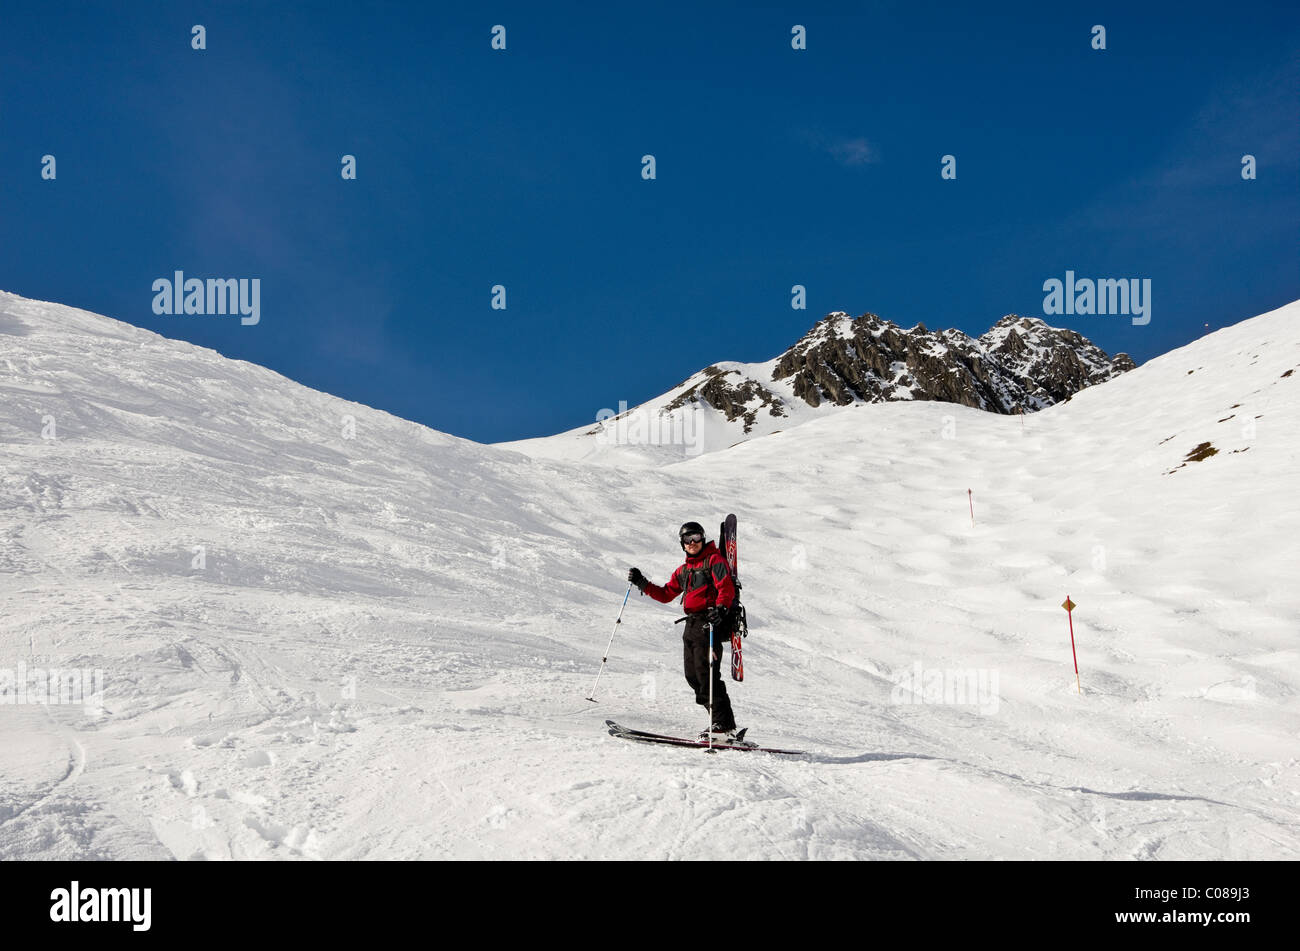 St Anton am Arlberg, Tyrol, Austria. Skier carrying skis on ski route 33 from Kapall in Austrian Alps. - Stock Image